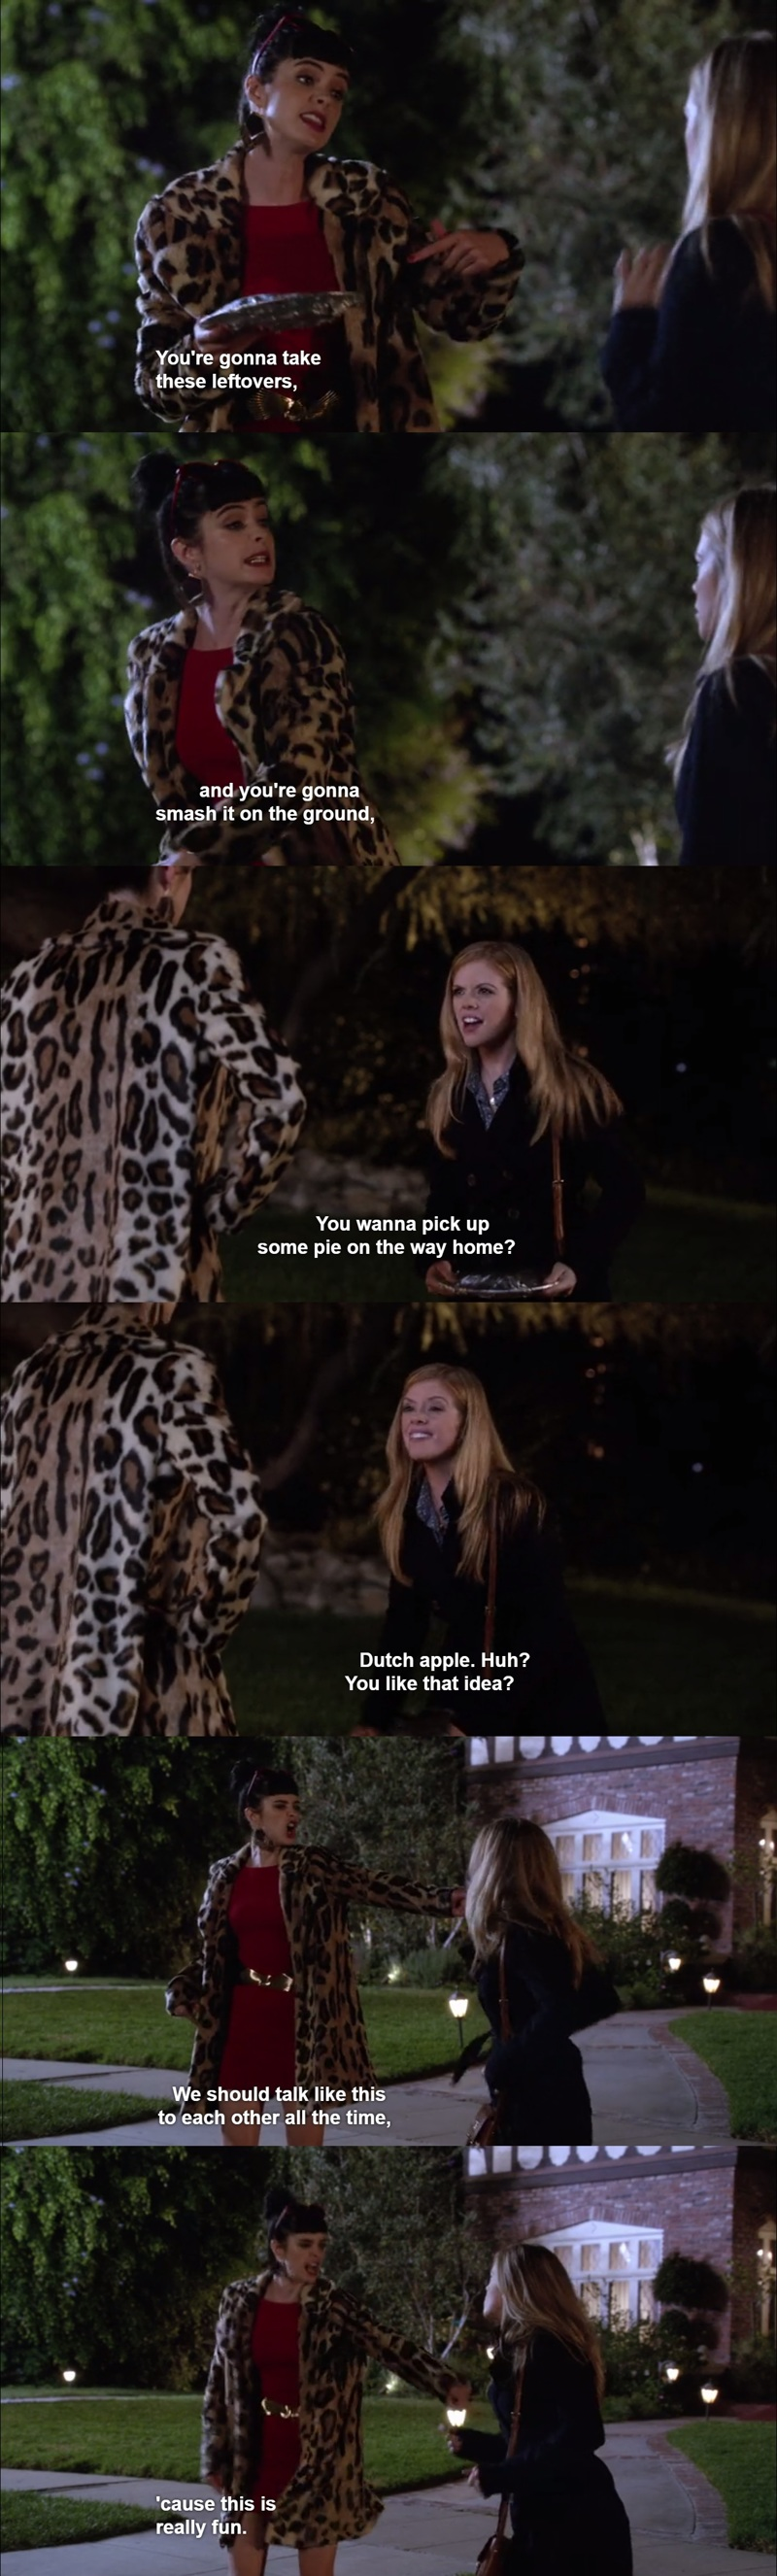 Loved this scene!!!!!